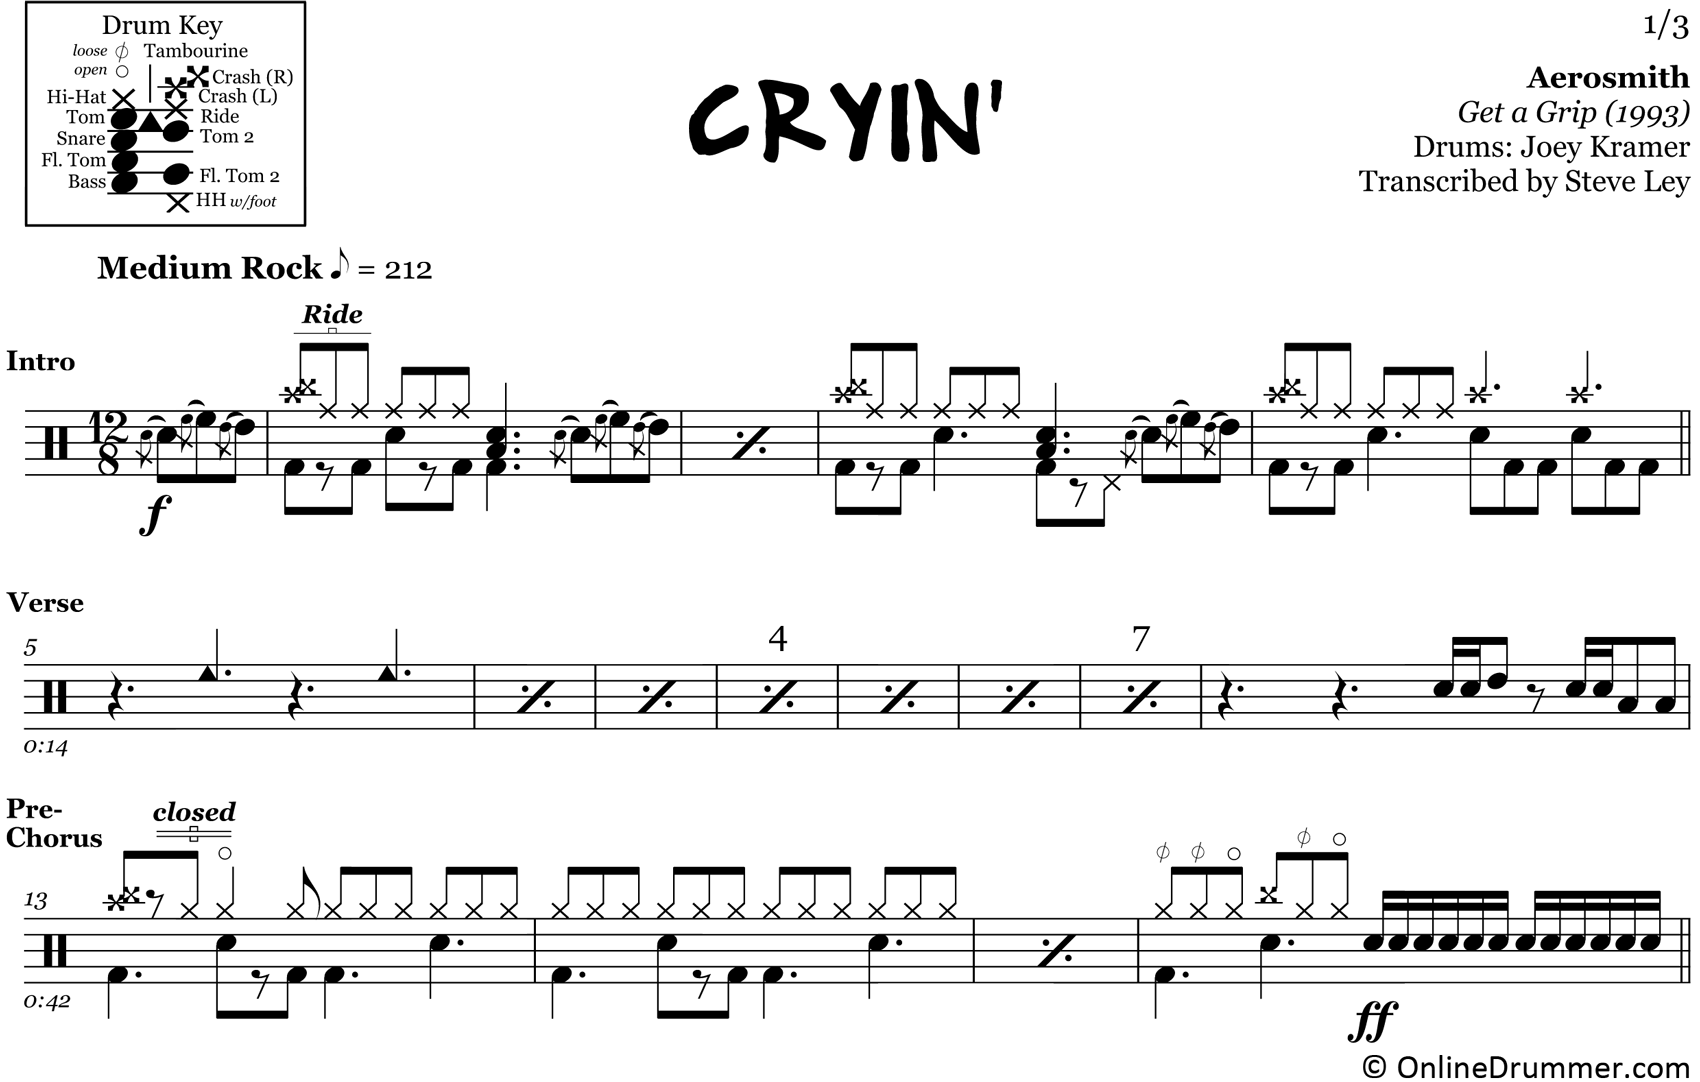 Cryin' - Aerosmith - Drum Sheet Music